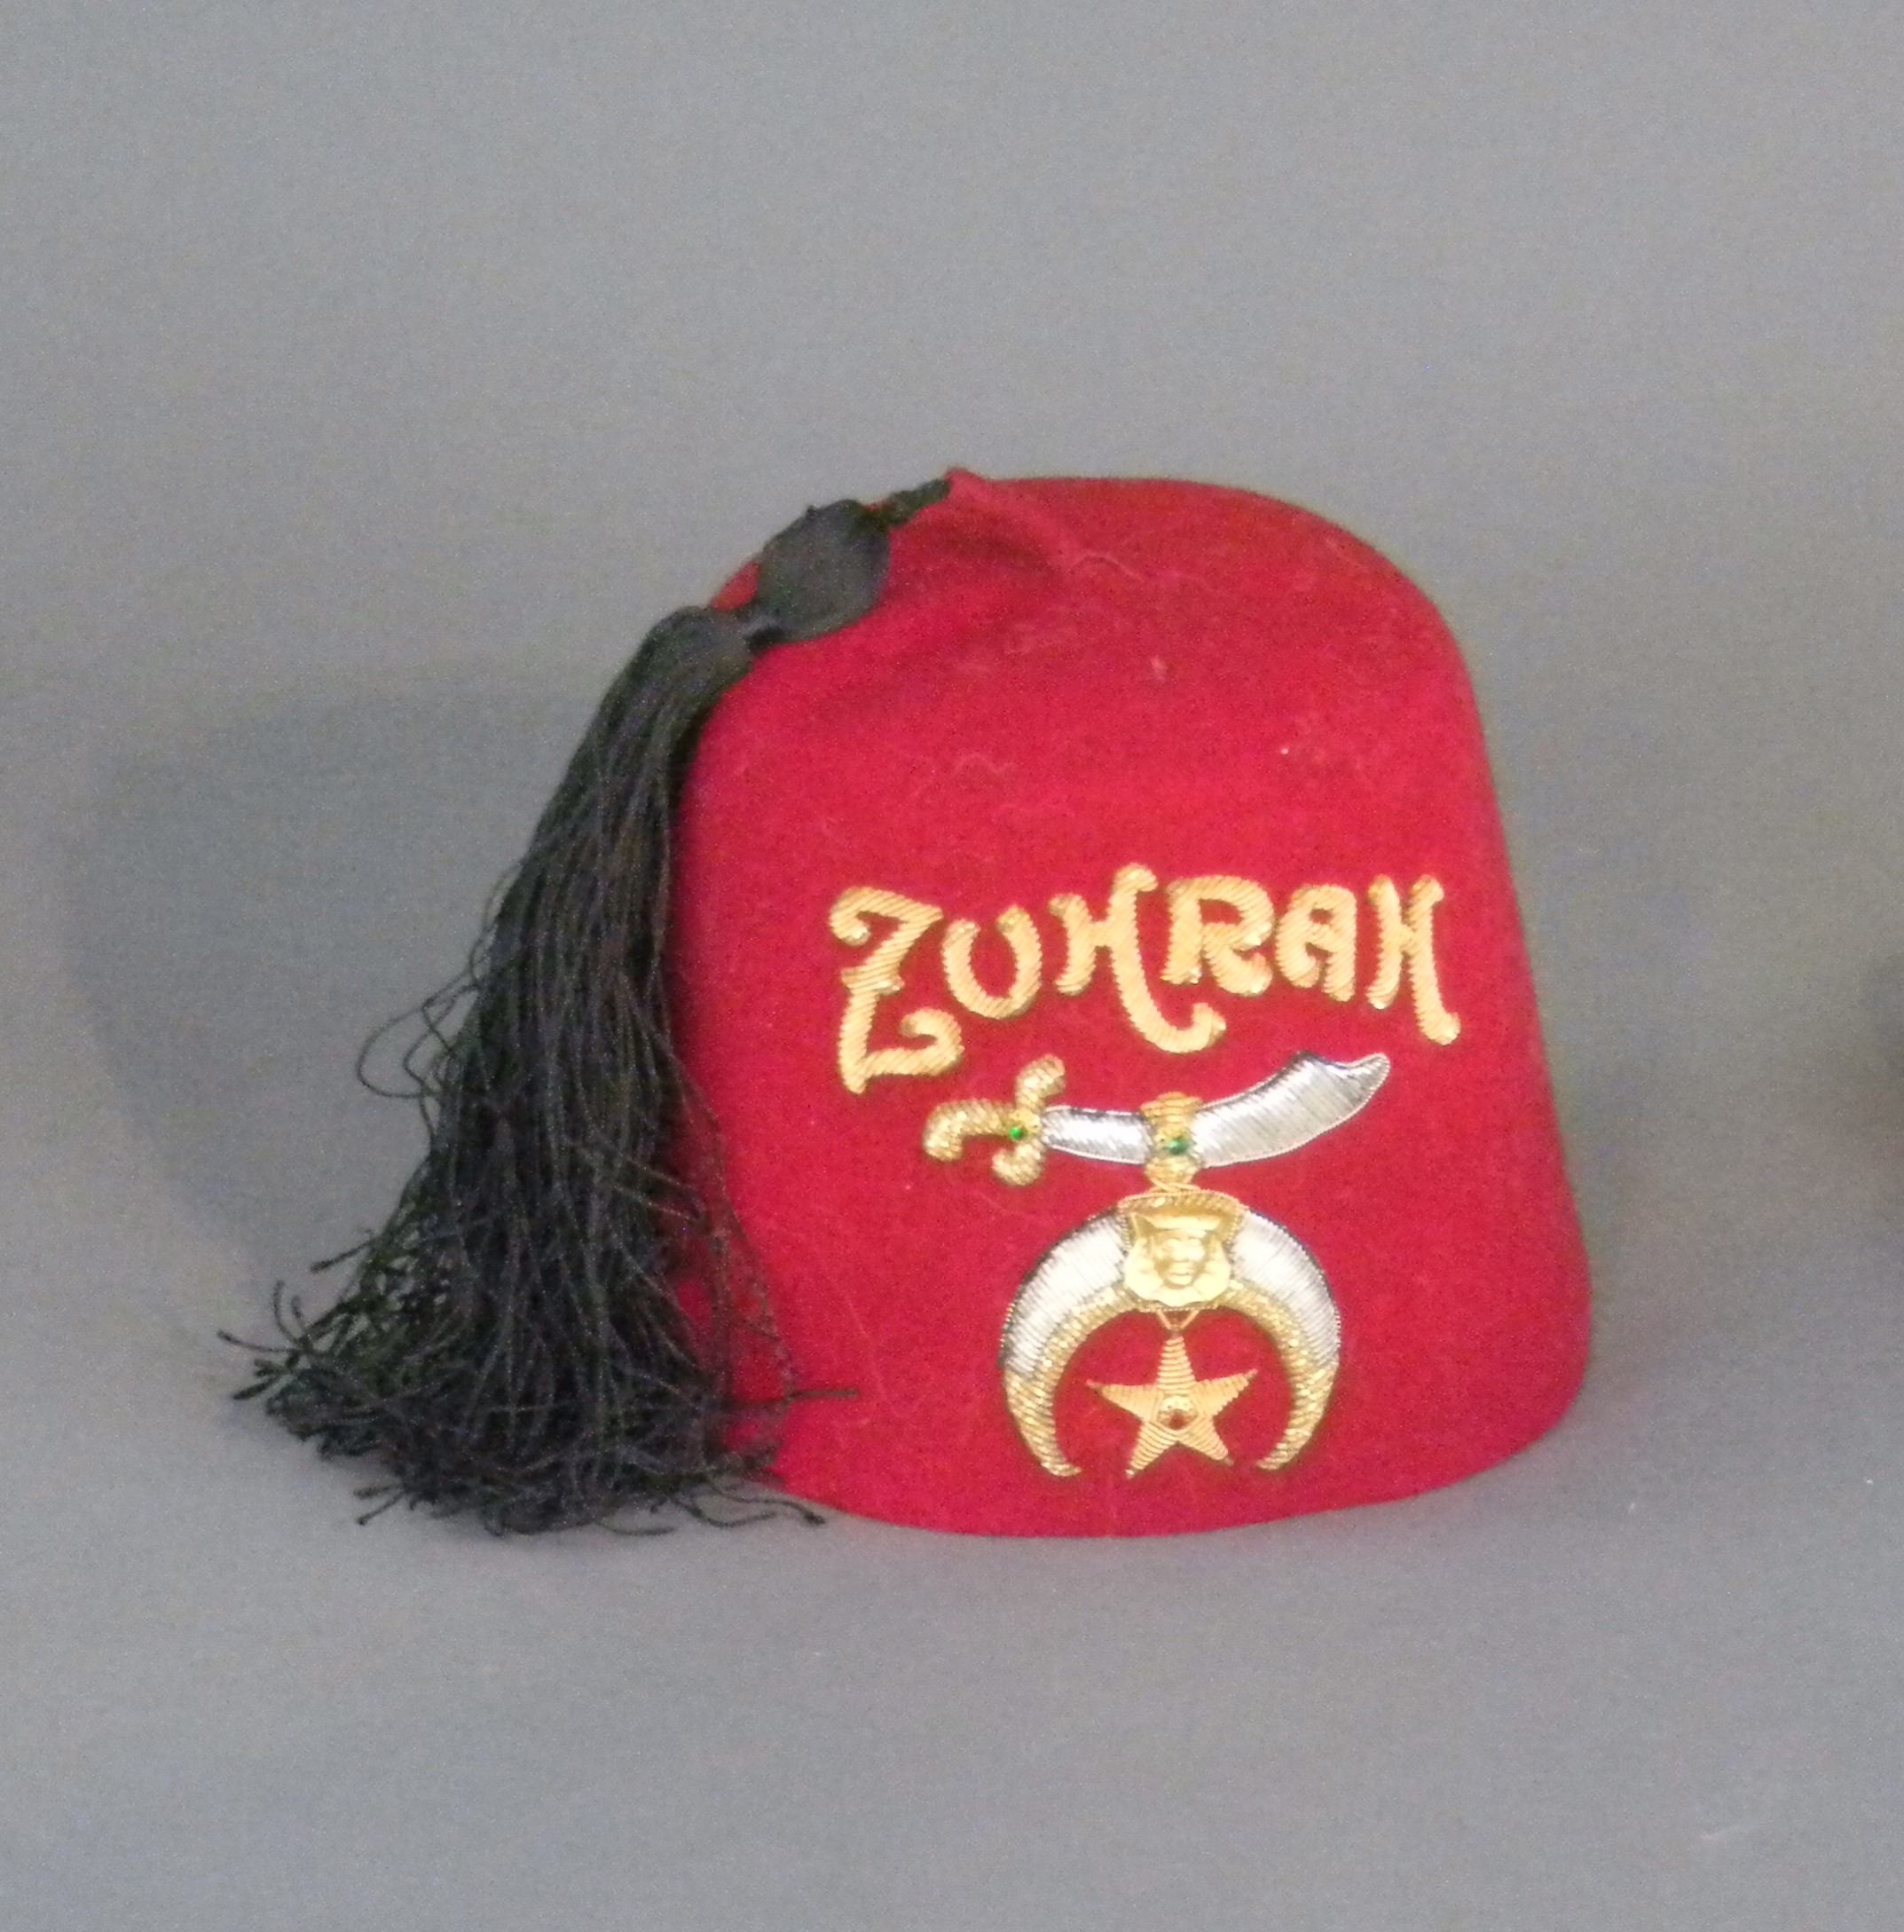 Image of a hat.